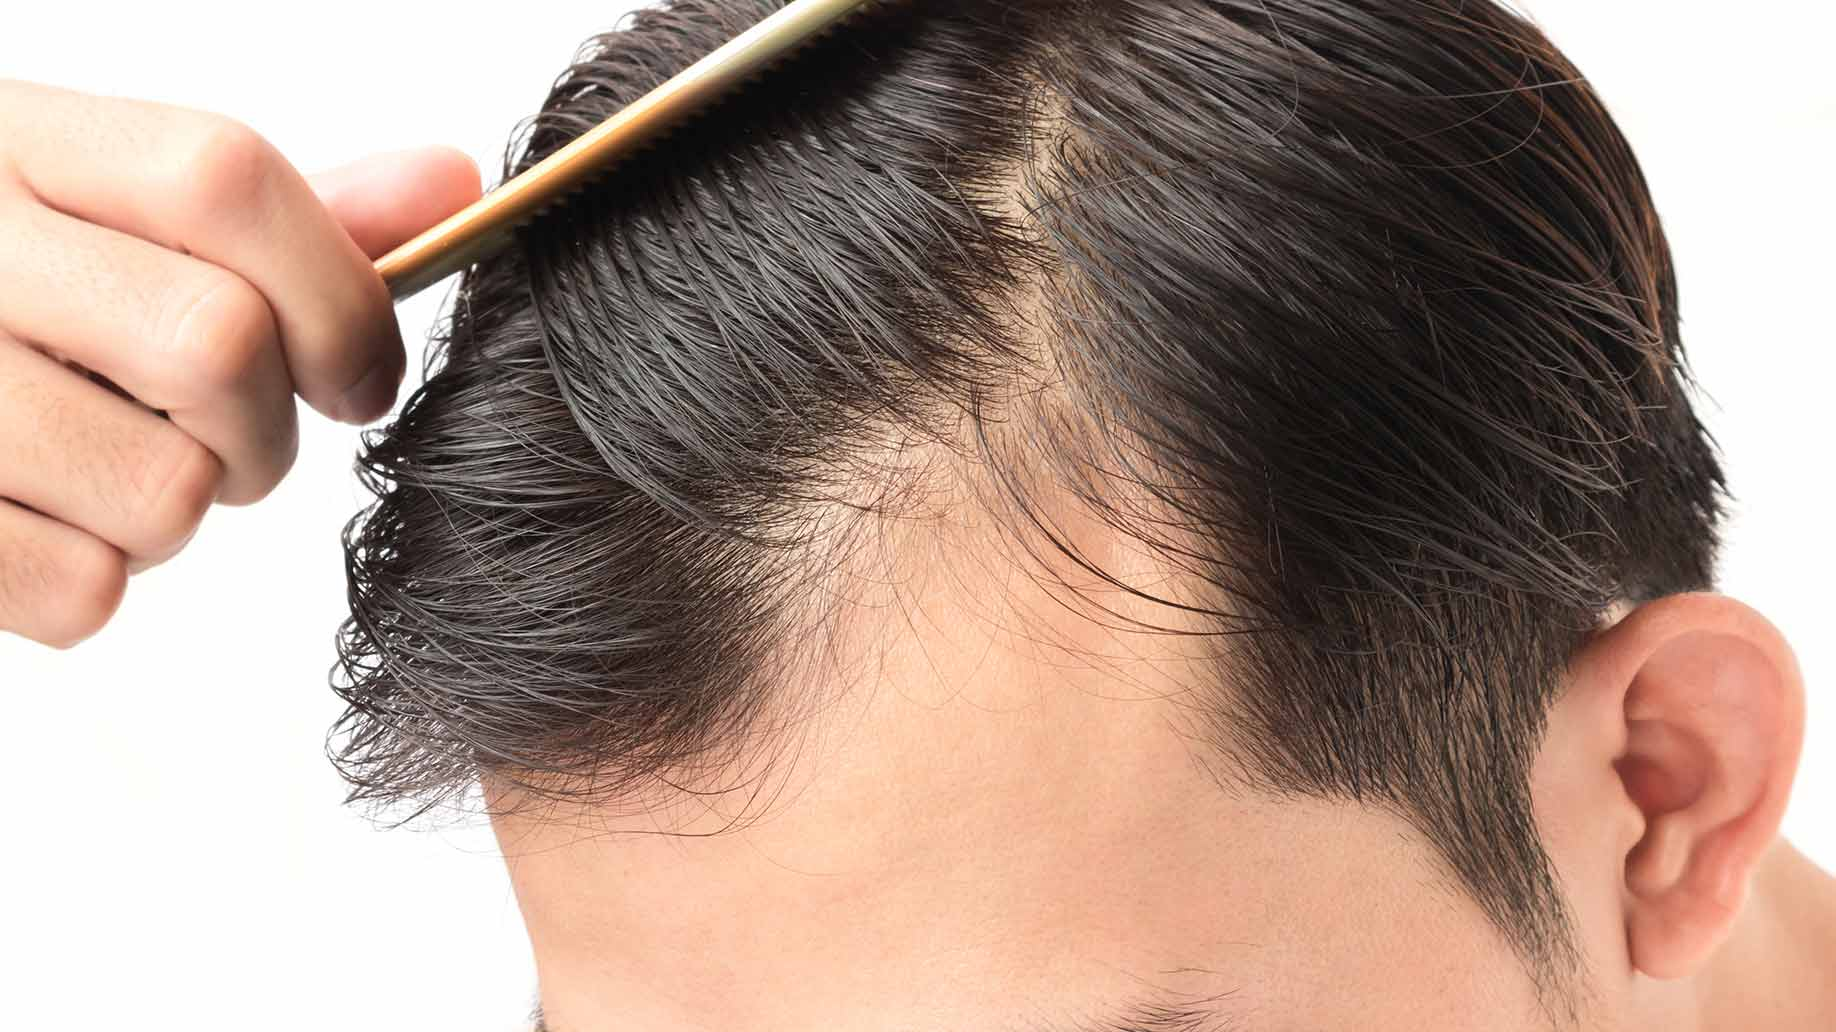 The Most Frequent Factors That Cause Hair Loss